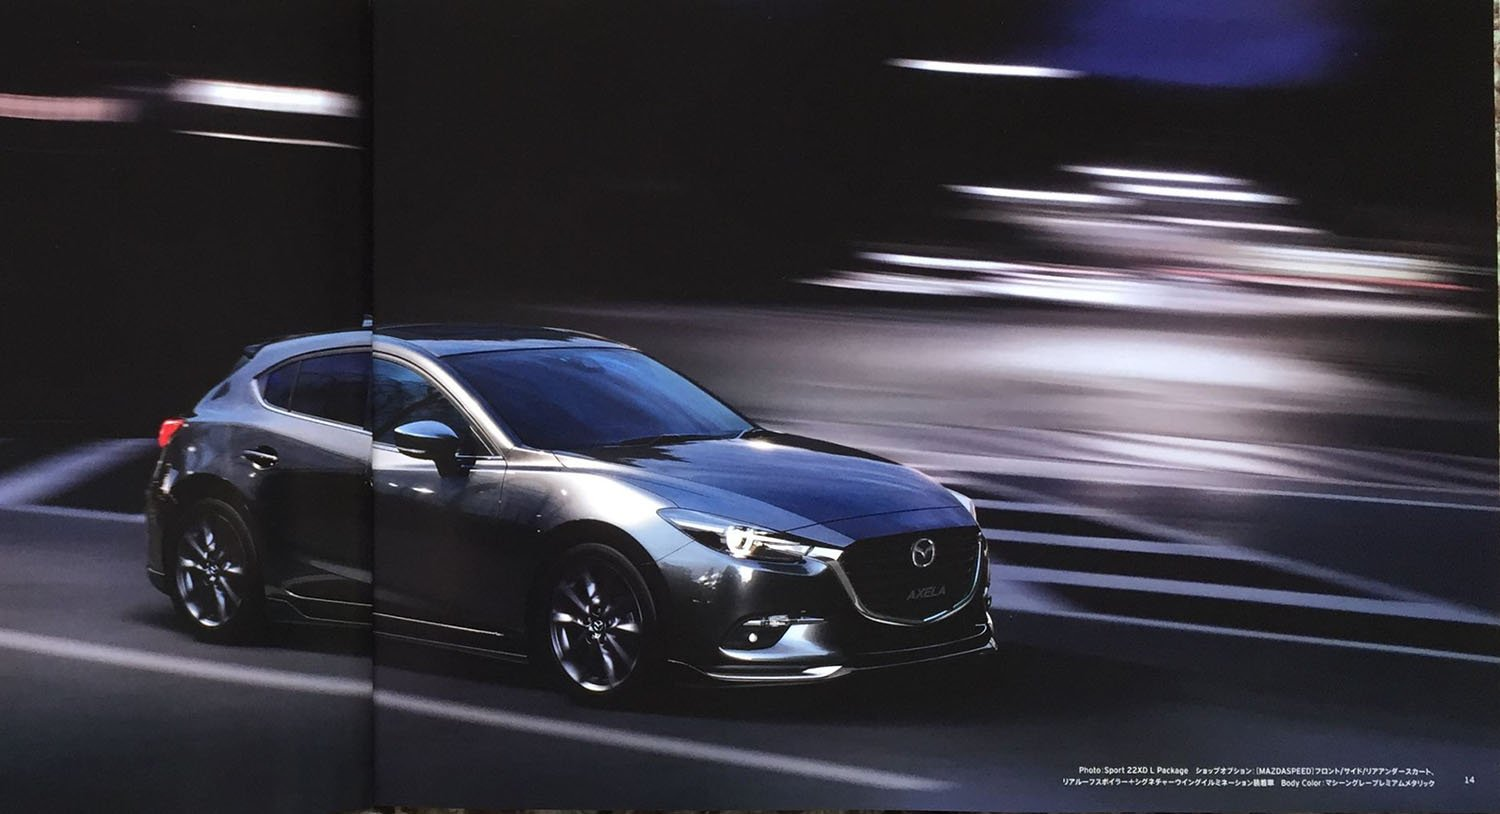 2019 Hyundai Accent >> 2017 Mazda 3 facelift:: leaked Japanese brochure surfaces online - UPDATED - Photos (1 of 14)